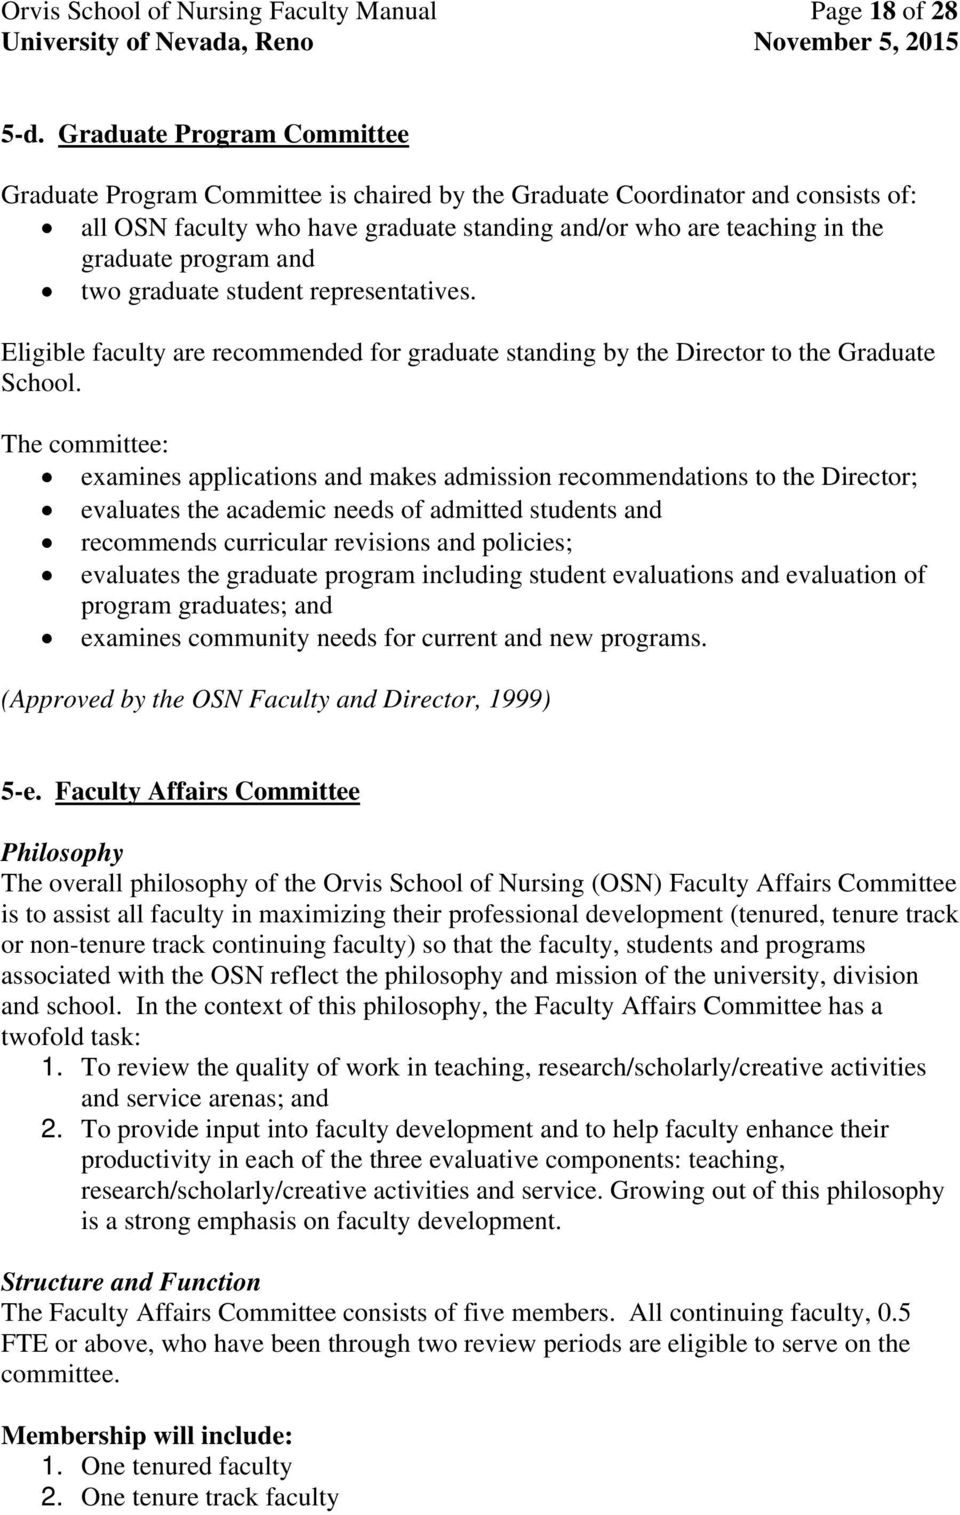 program and two graduate student representatives. Eligible faculty are recommended for graduate standing by the Director to the Graduate School.